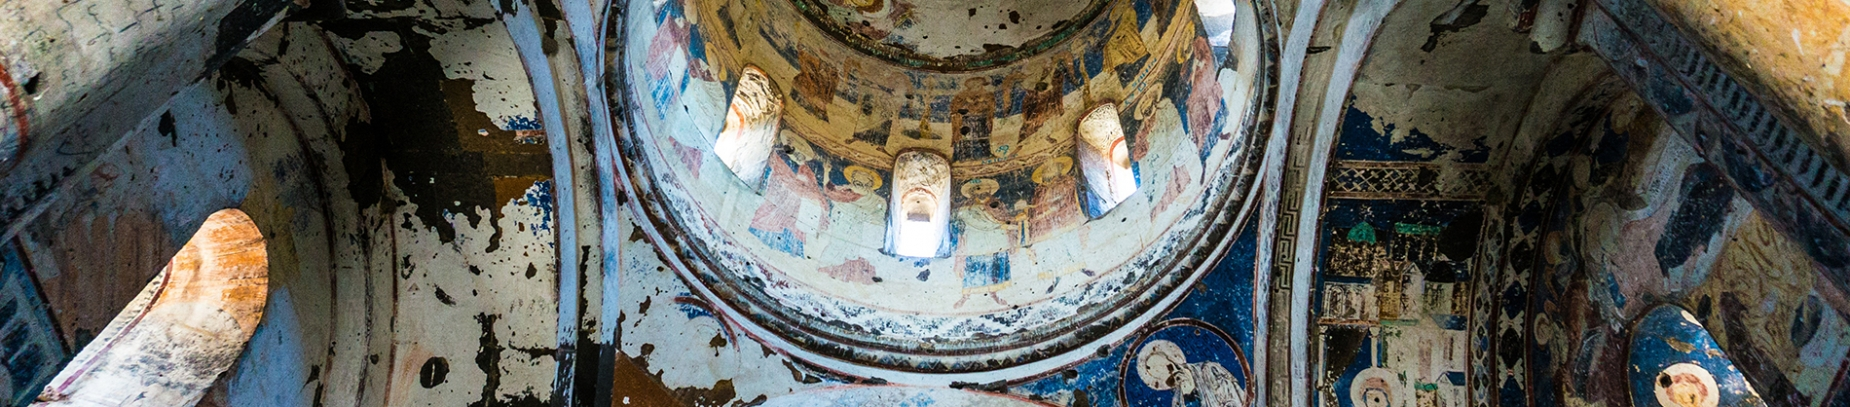 A painted cathedral ceiling